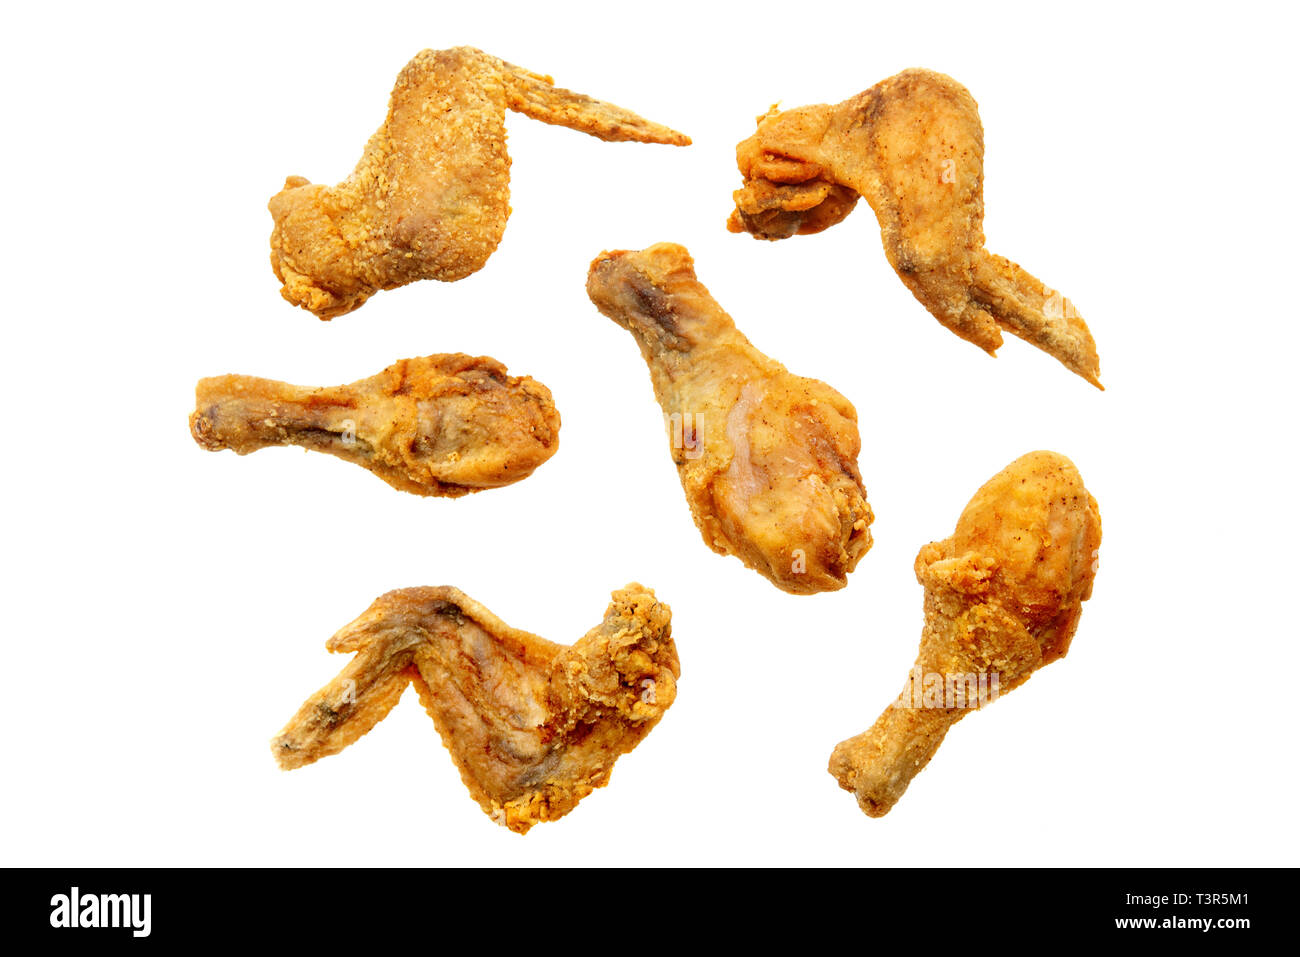 Original recipe fried chickens, isolated on white background. - Stock Image